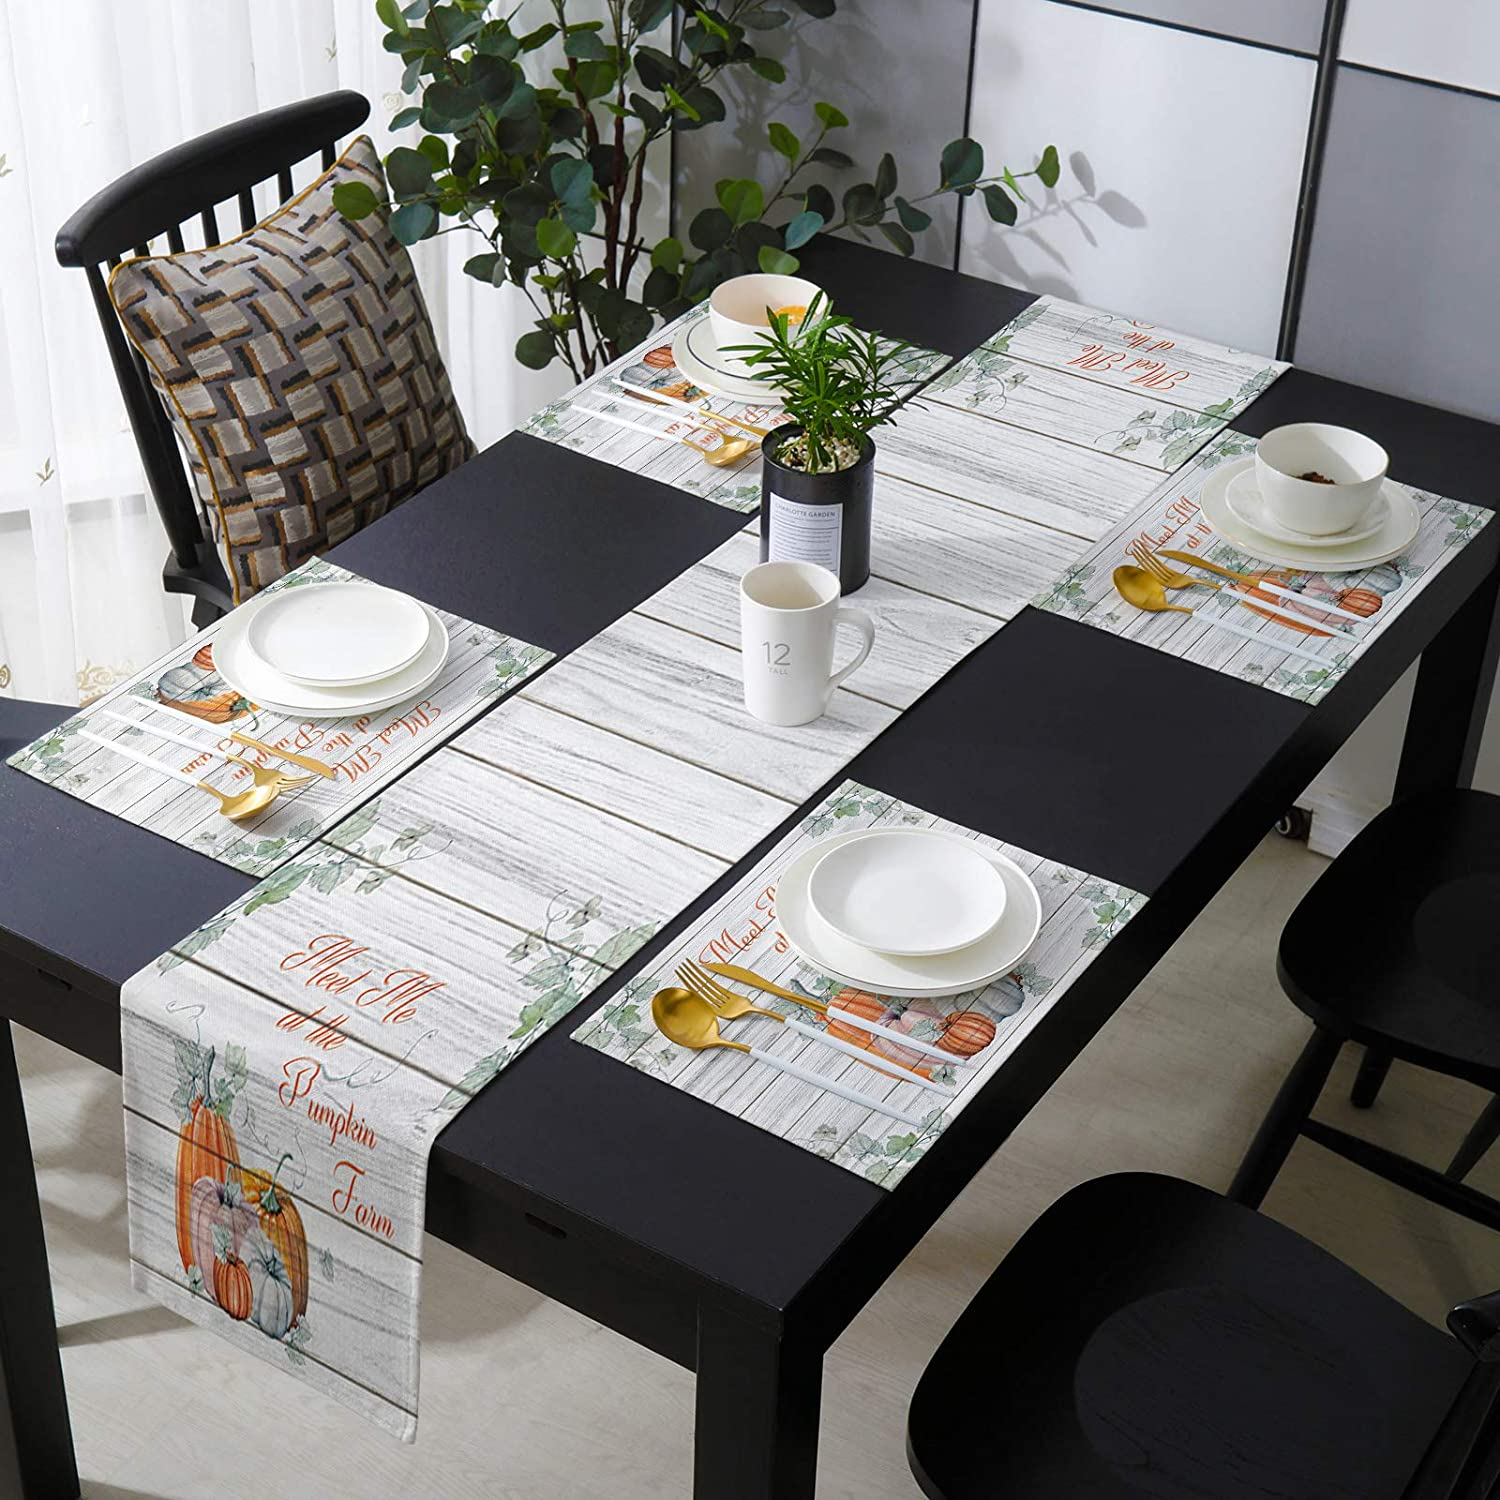 Fantasy Staring 16 x 72 Inch Detroit Mall Set Runner Table Placemats with Soldering of